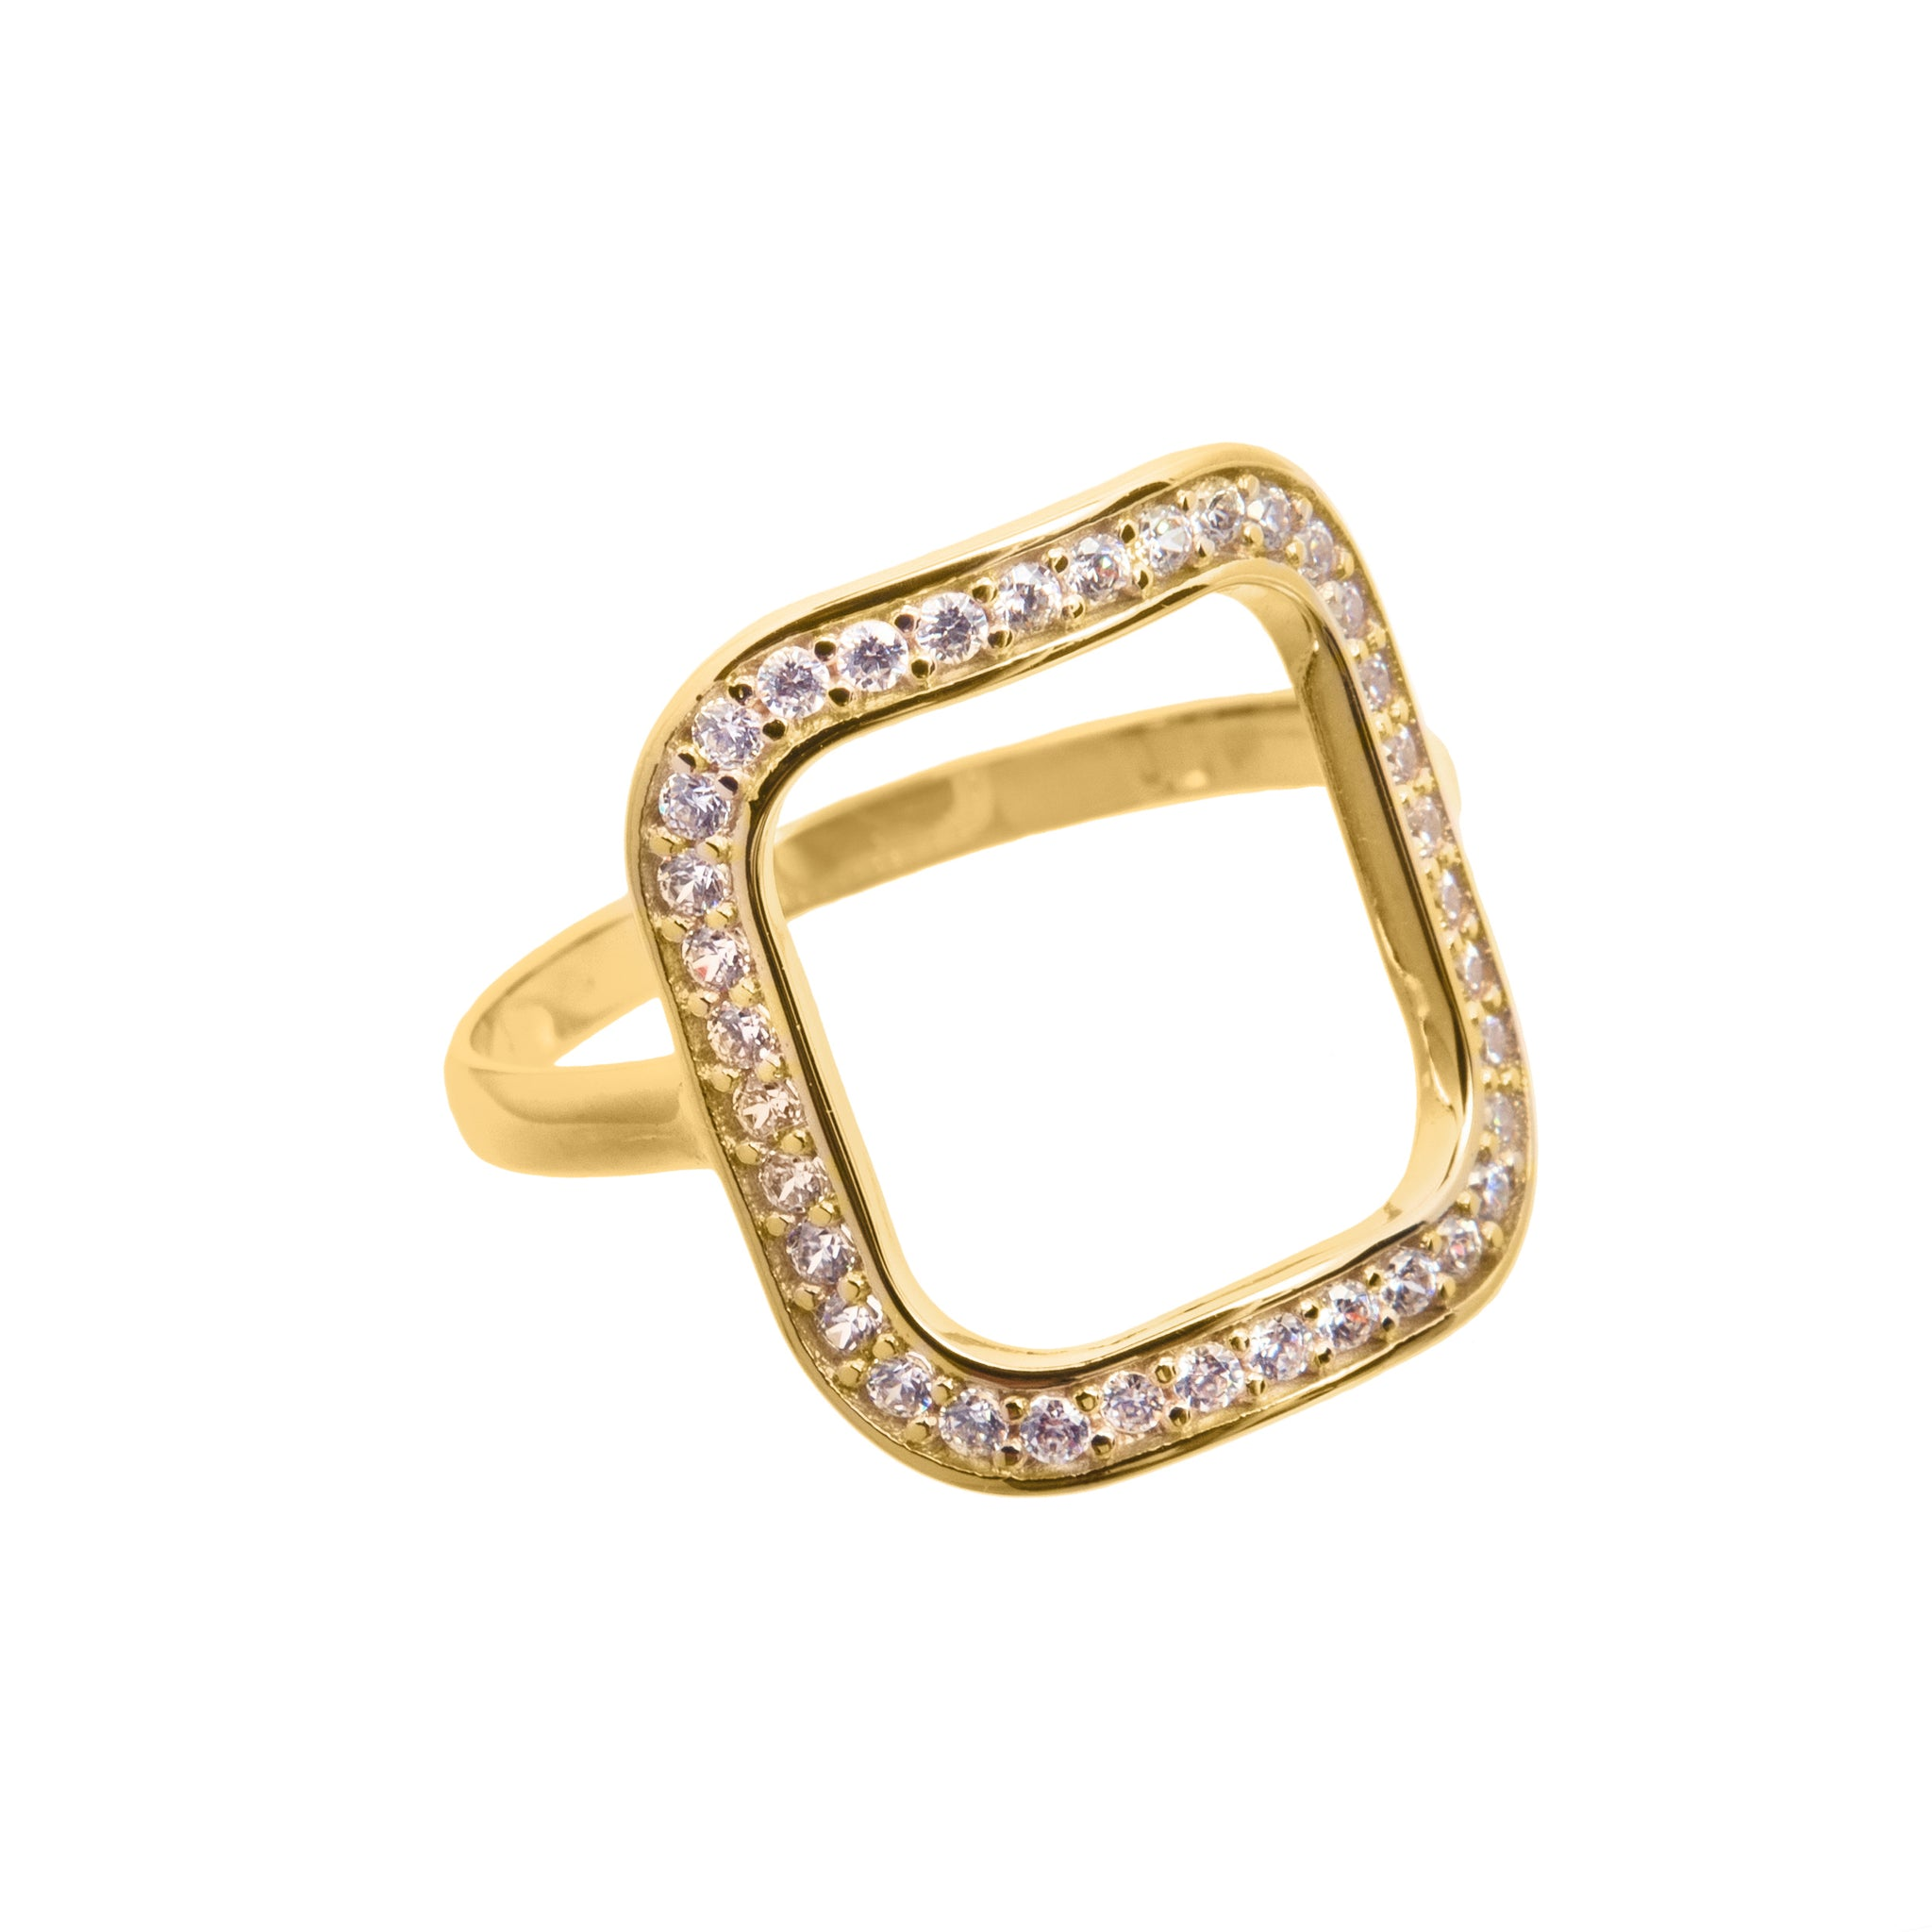 Nadine gold ring